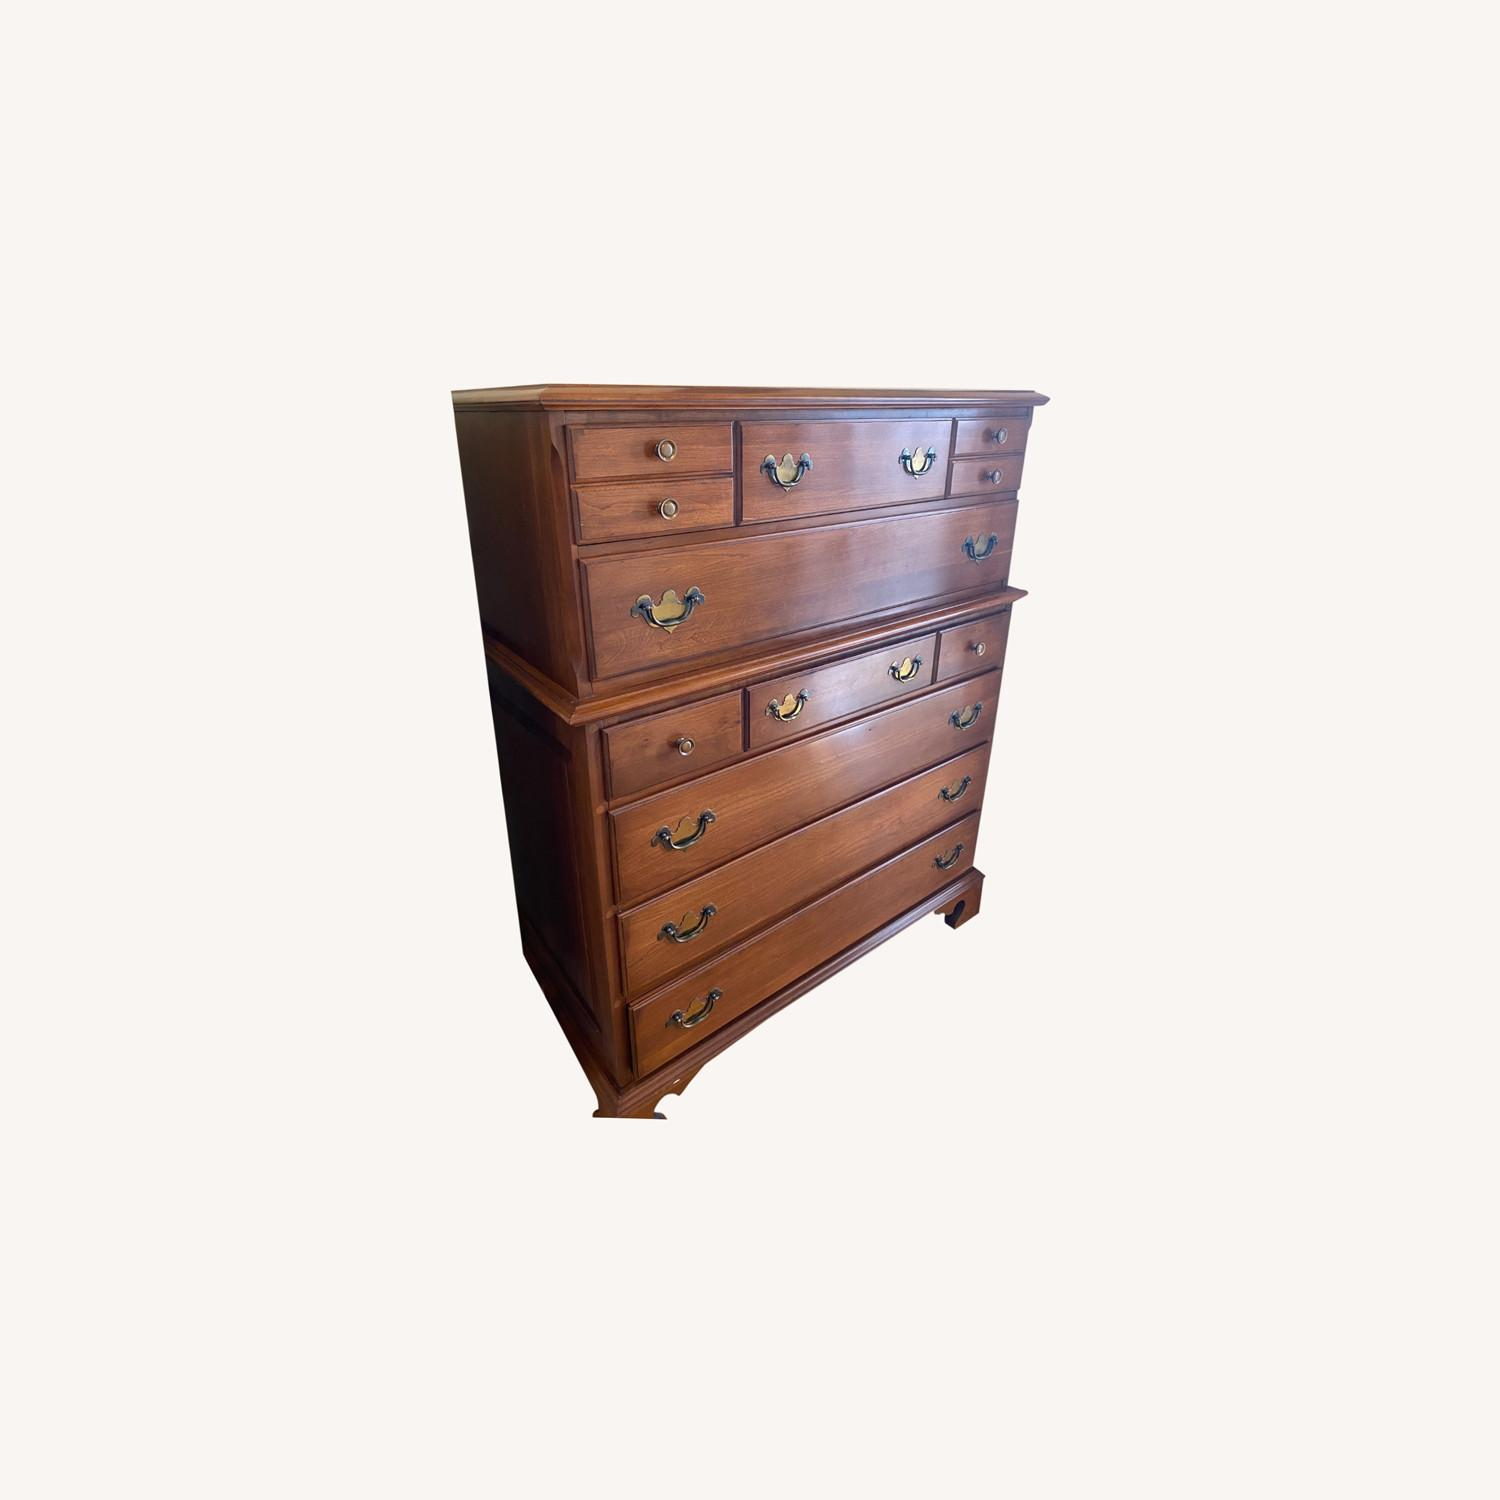 Permacraft Vintage Cherry Wood Chest/ Tall Dresser - image-0